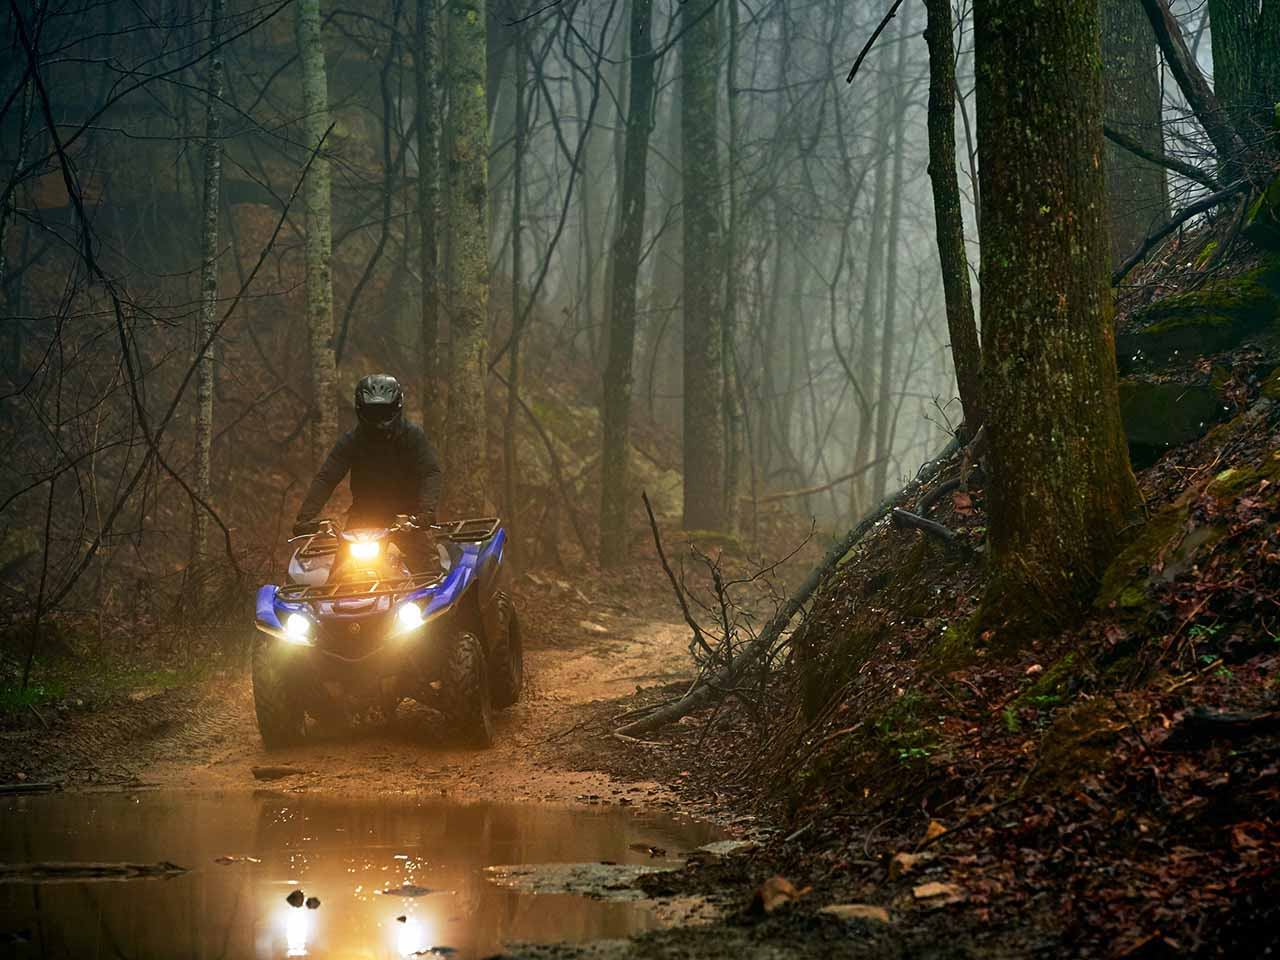 2019 Yamaha Grizzly 700 Gallery 1